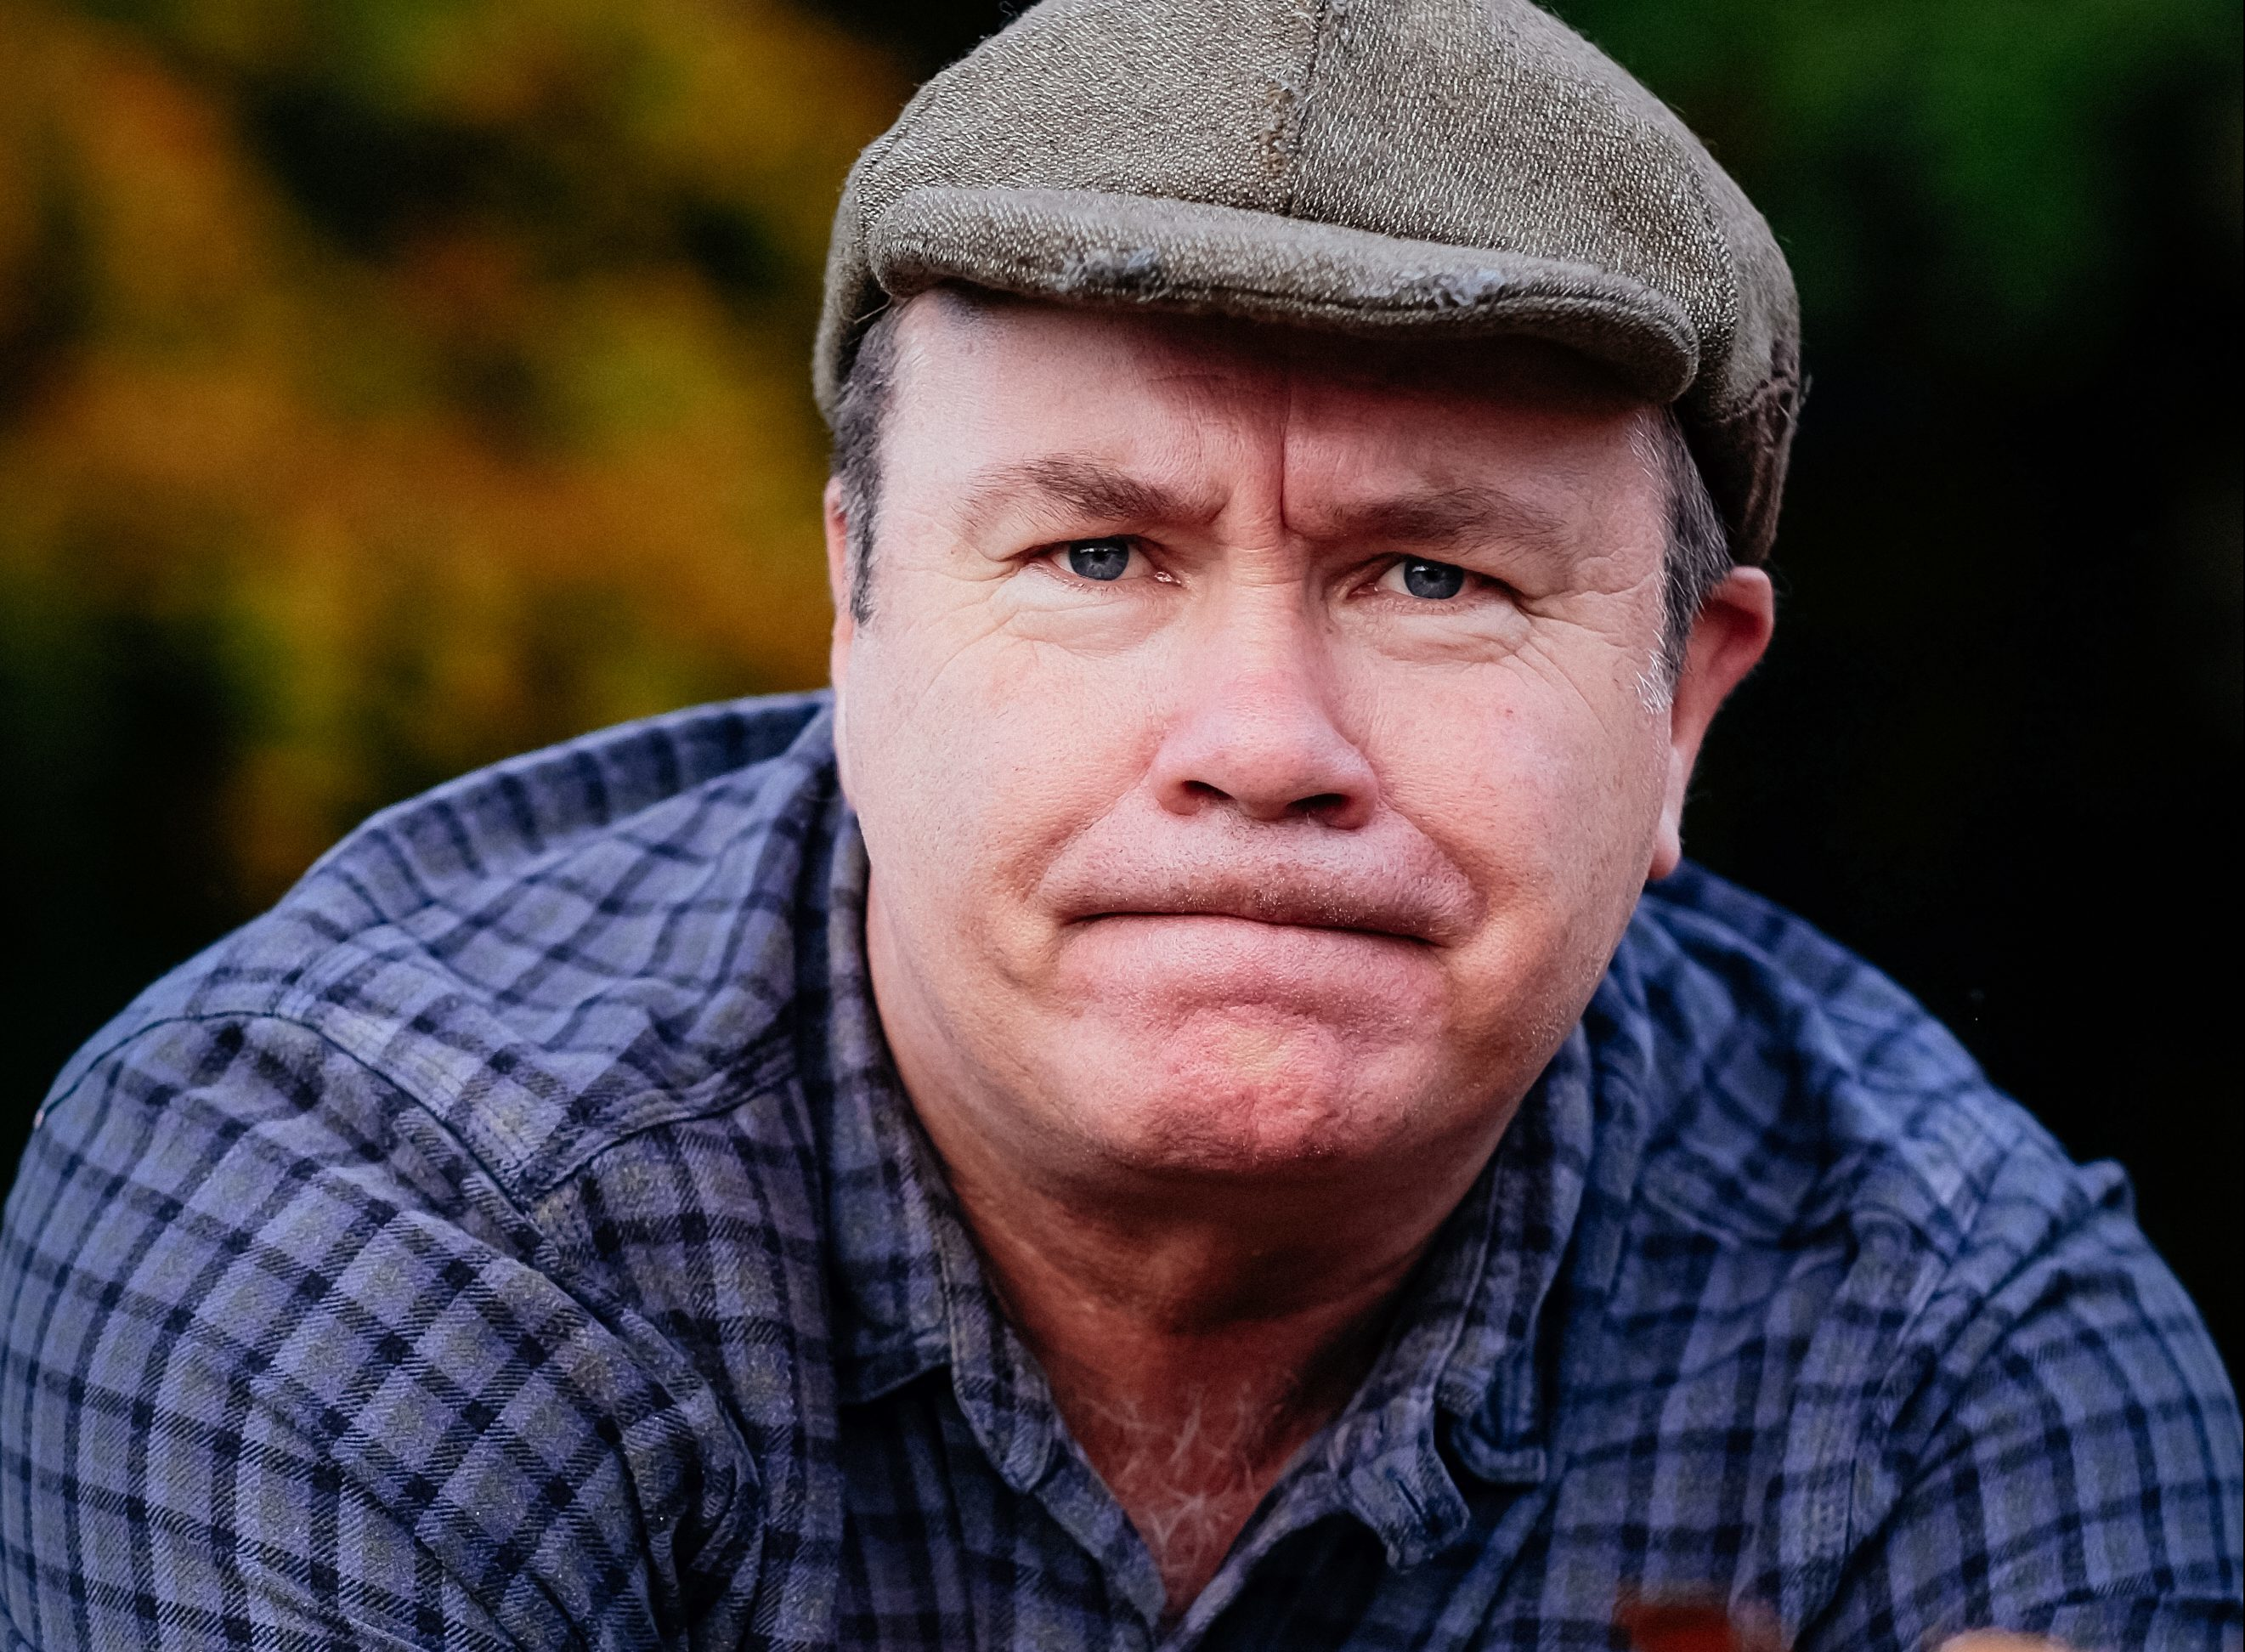 David Lonsdale as David Stockwell (Andrew Billington Photography)